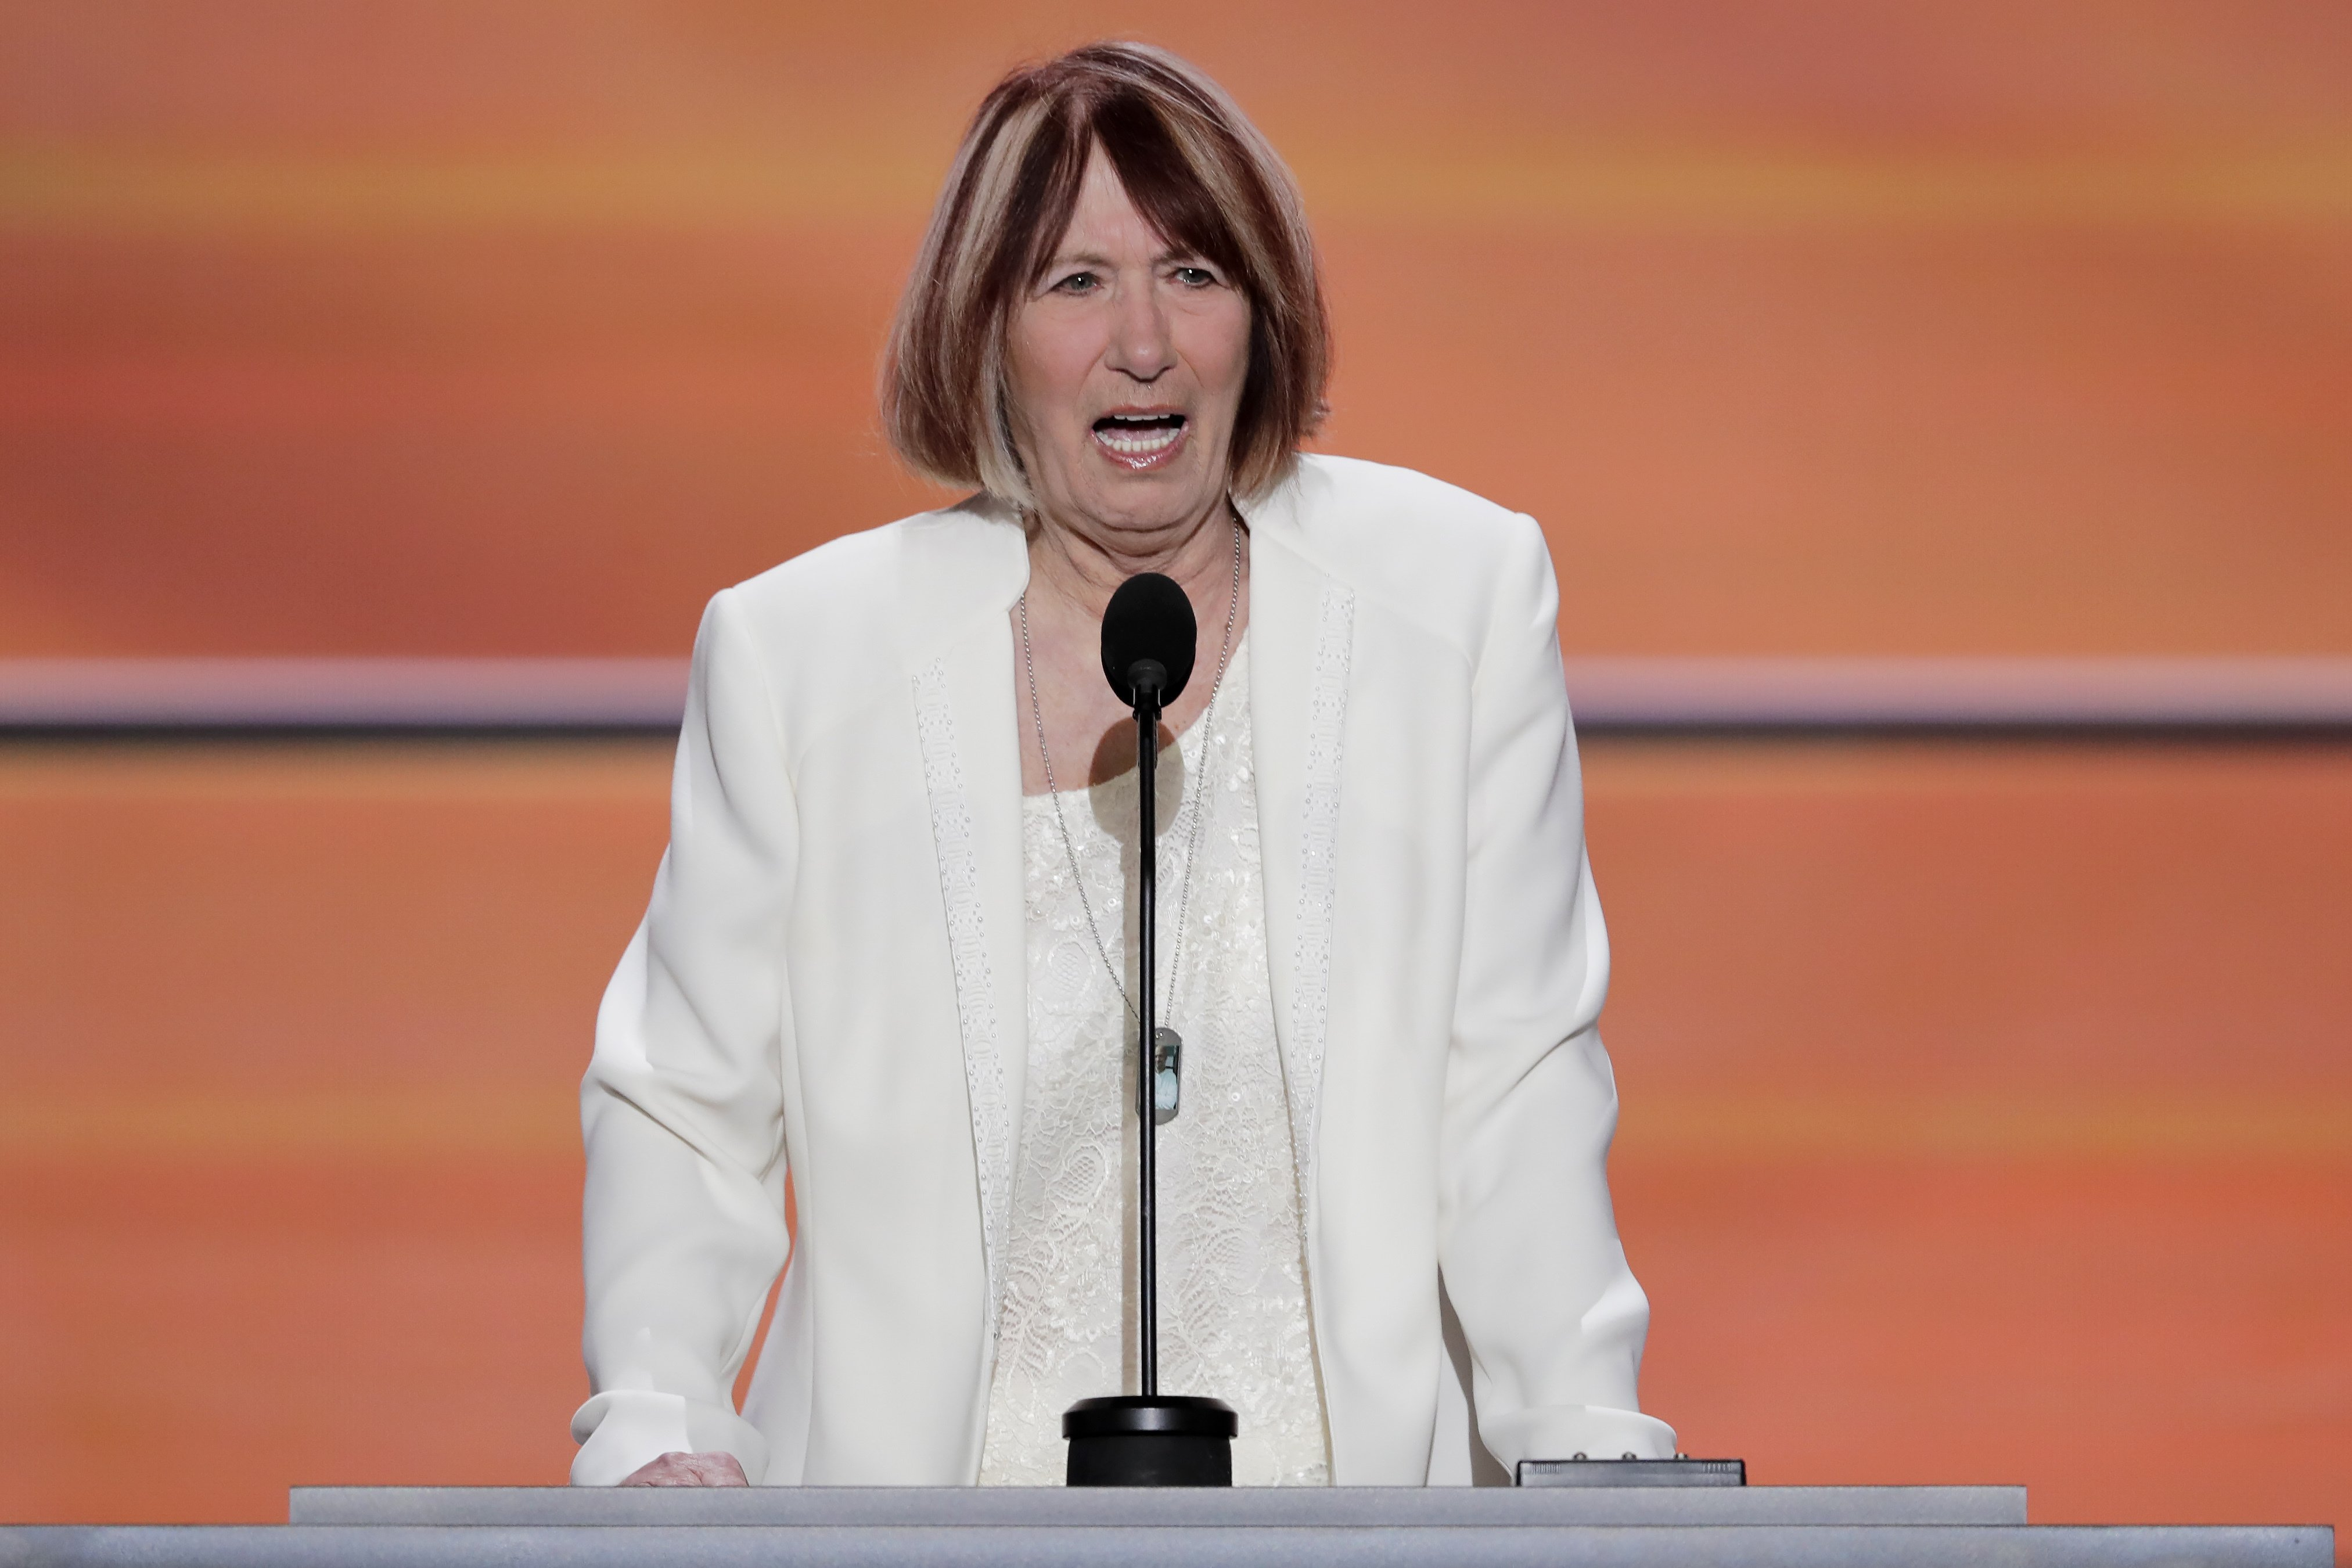 Pat Smith, mother of Benghazi victim Sean Smith speaks during the opening day of the Republican National Convention in Cleveland, Monday, July 18, 2016. (AP Photo/J. Scott Applewhite)